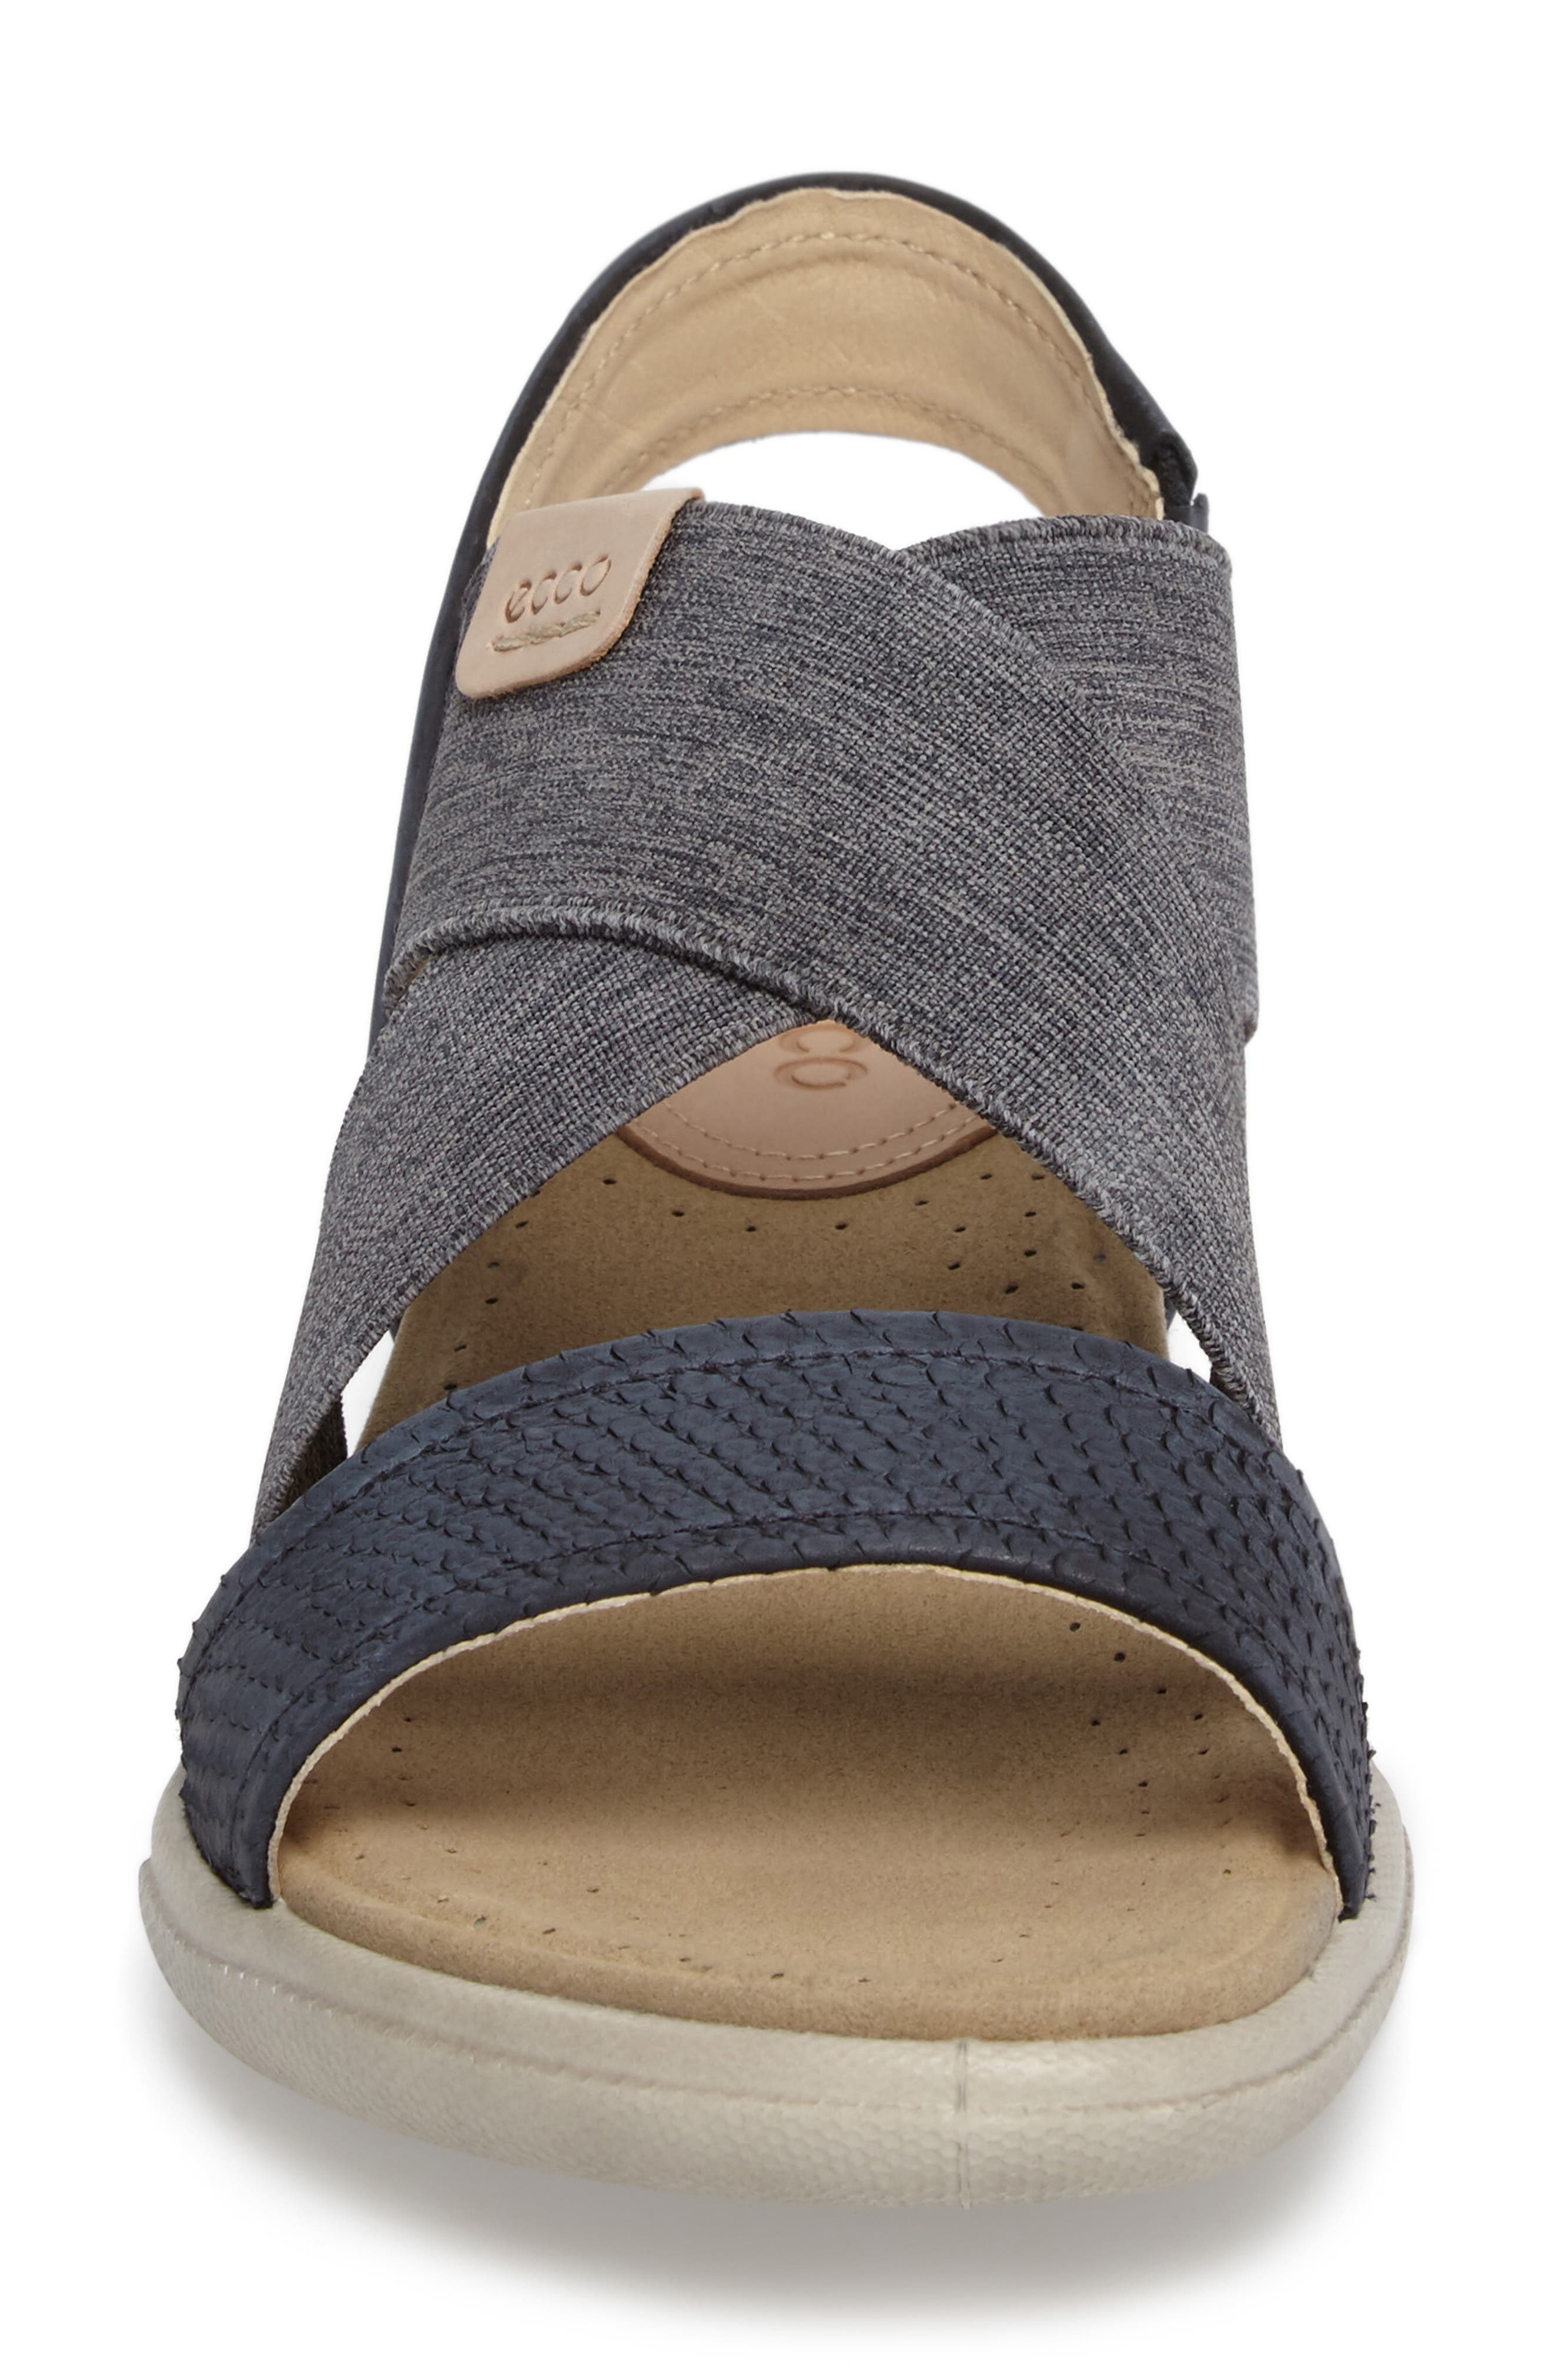 Damara Cross-Strap Sandal,                             Alternate thumbnail 26, color,